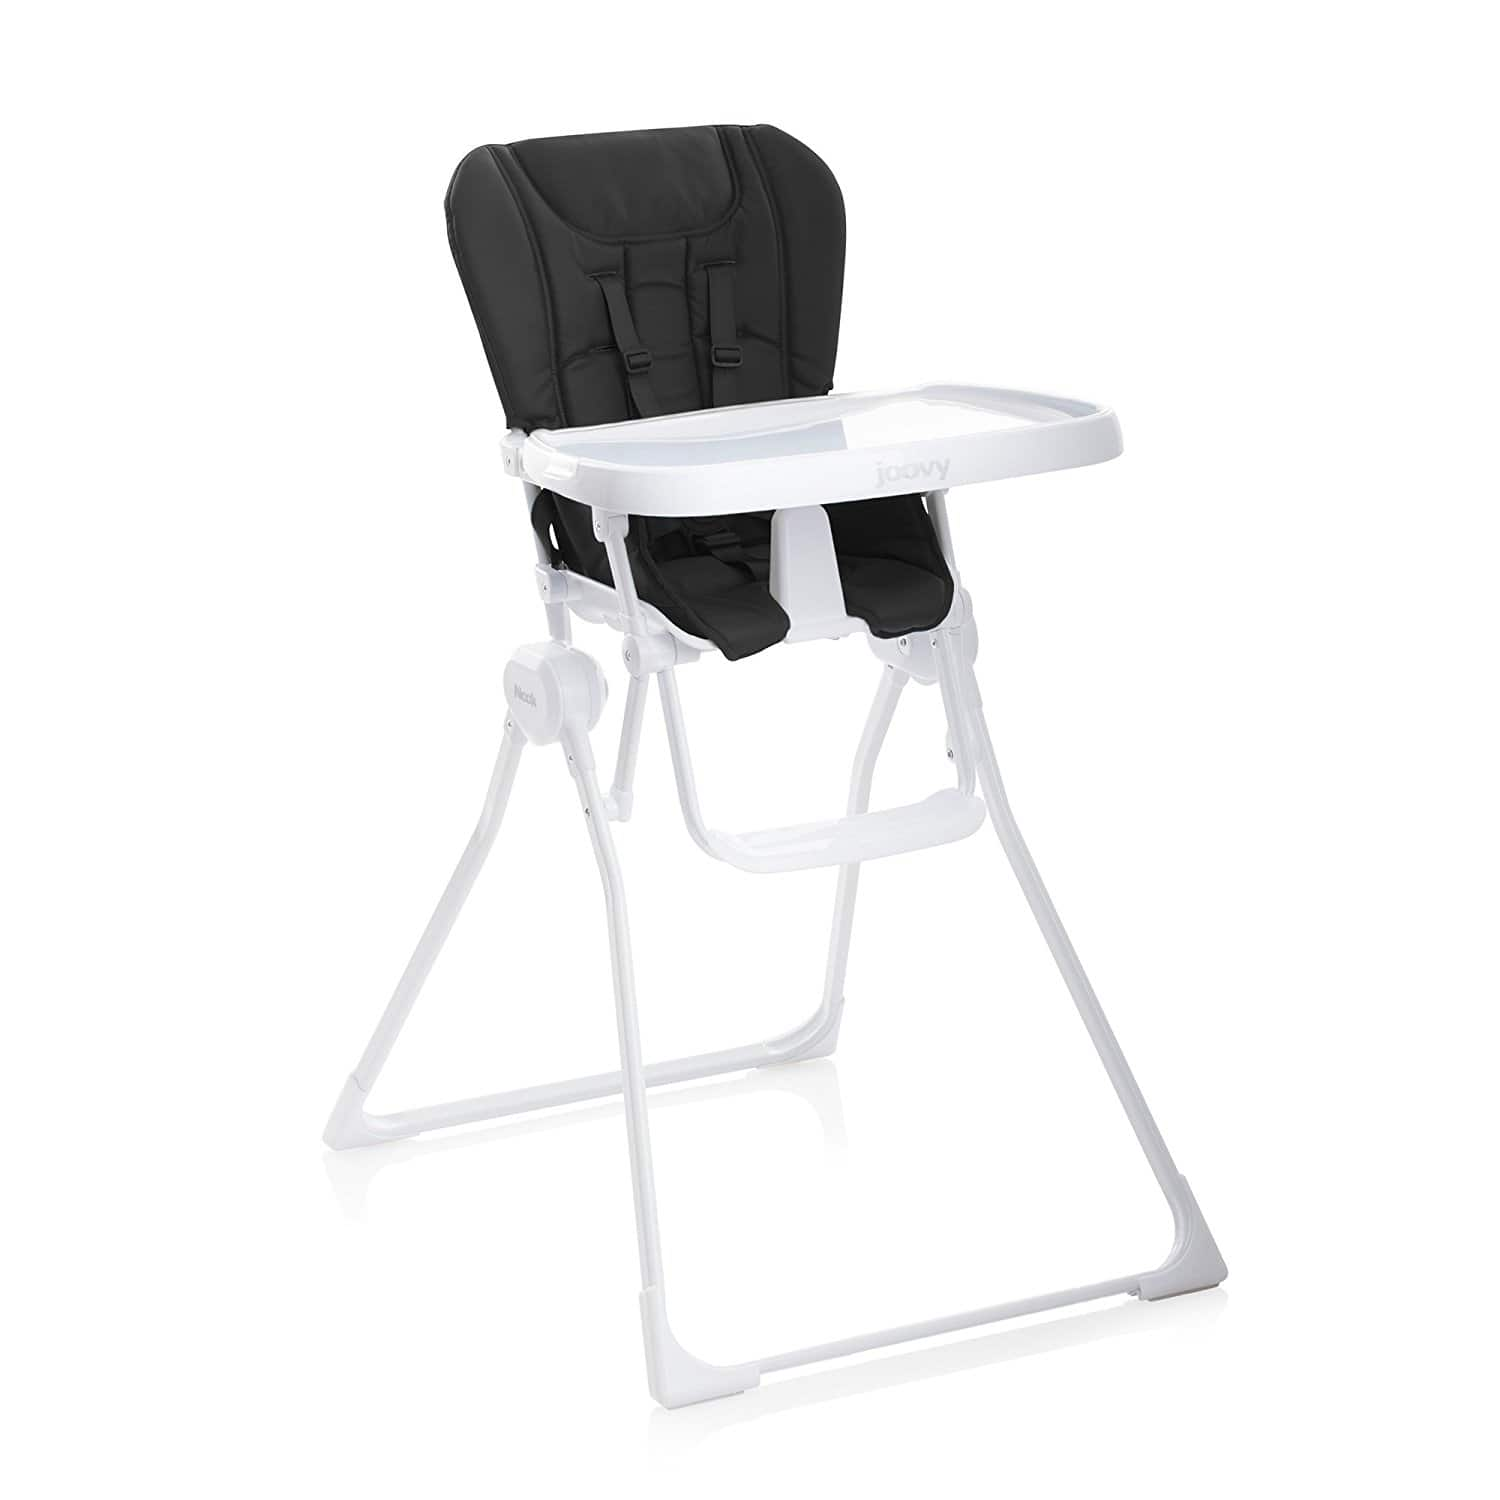 JOOVY Nook High Chair, Black $73.79